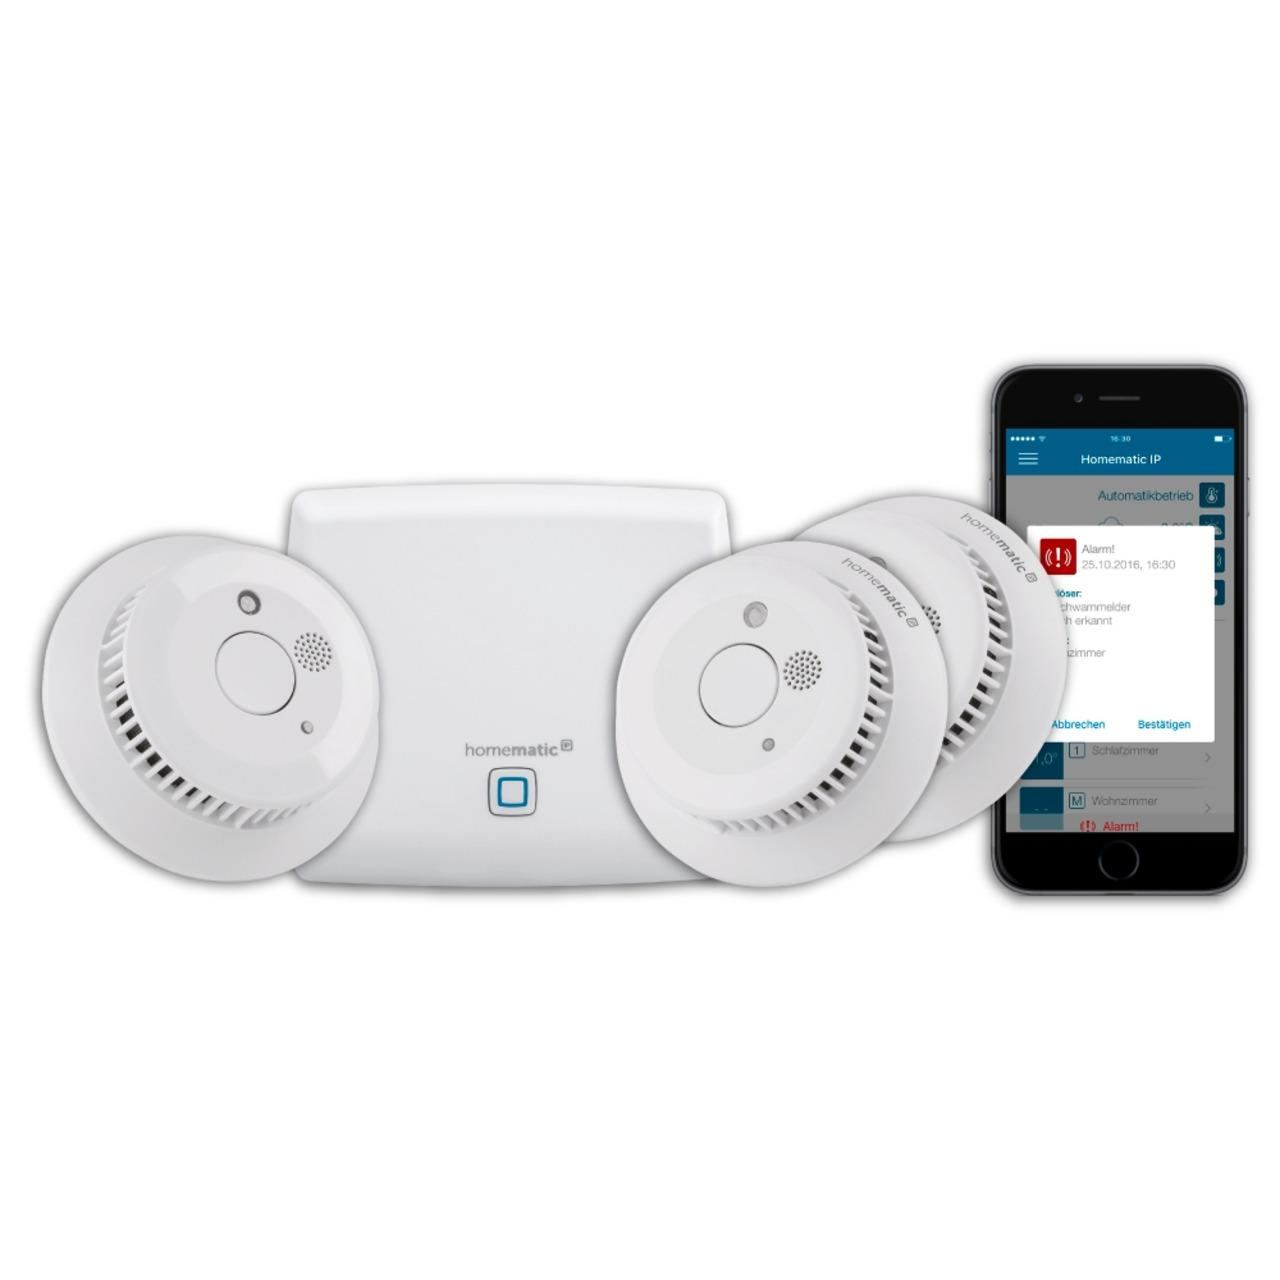 Homematic IP Smart Home Starter Set Rauchmelder mit Access Point und 3 Funk-Rauchmeldern